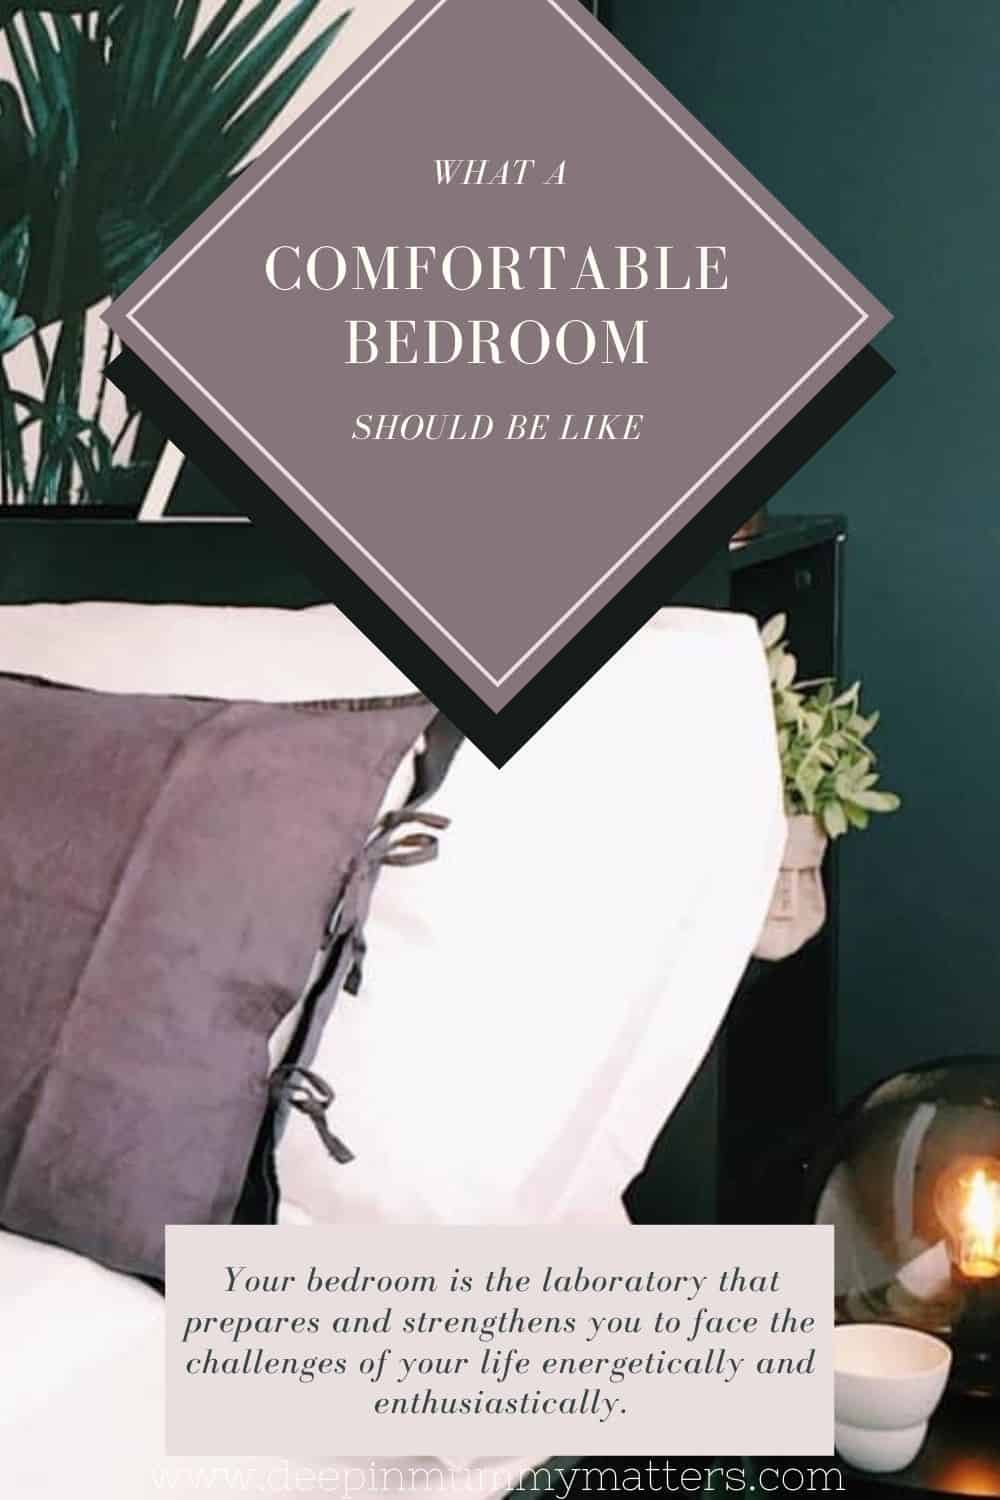 What a Comfortable Bedroom Should Be Like